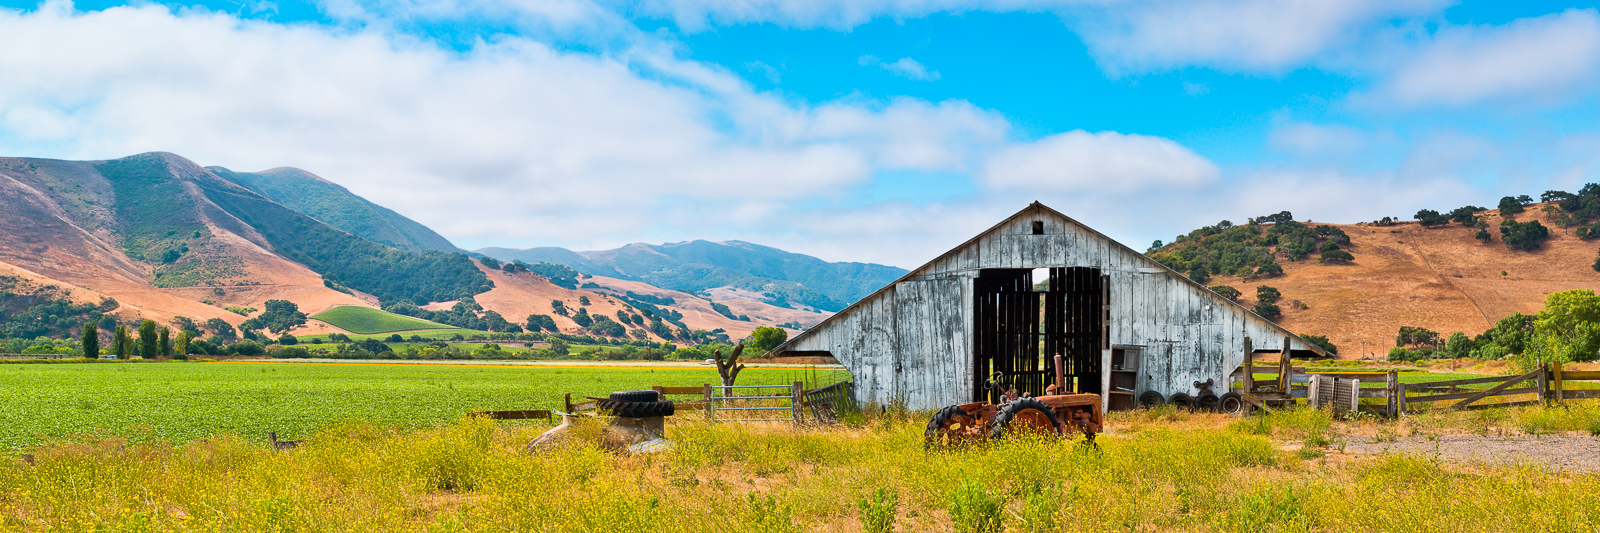 Yesteryear's Farm Barn,California,Horizontal,Panoramic,blue,landscape,rural,yellow,Santa Barbara,rolling hills,Yesteryear's Farm,fog,blue sky, photo